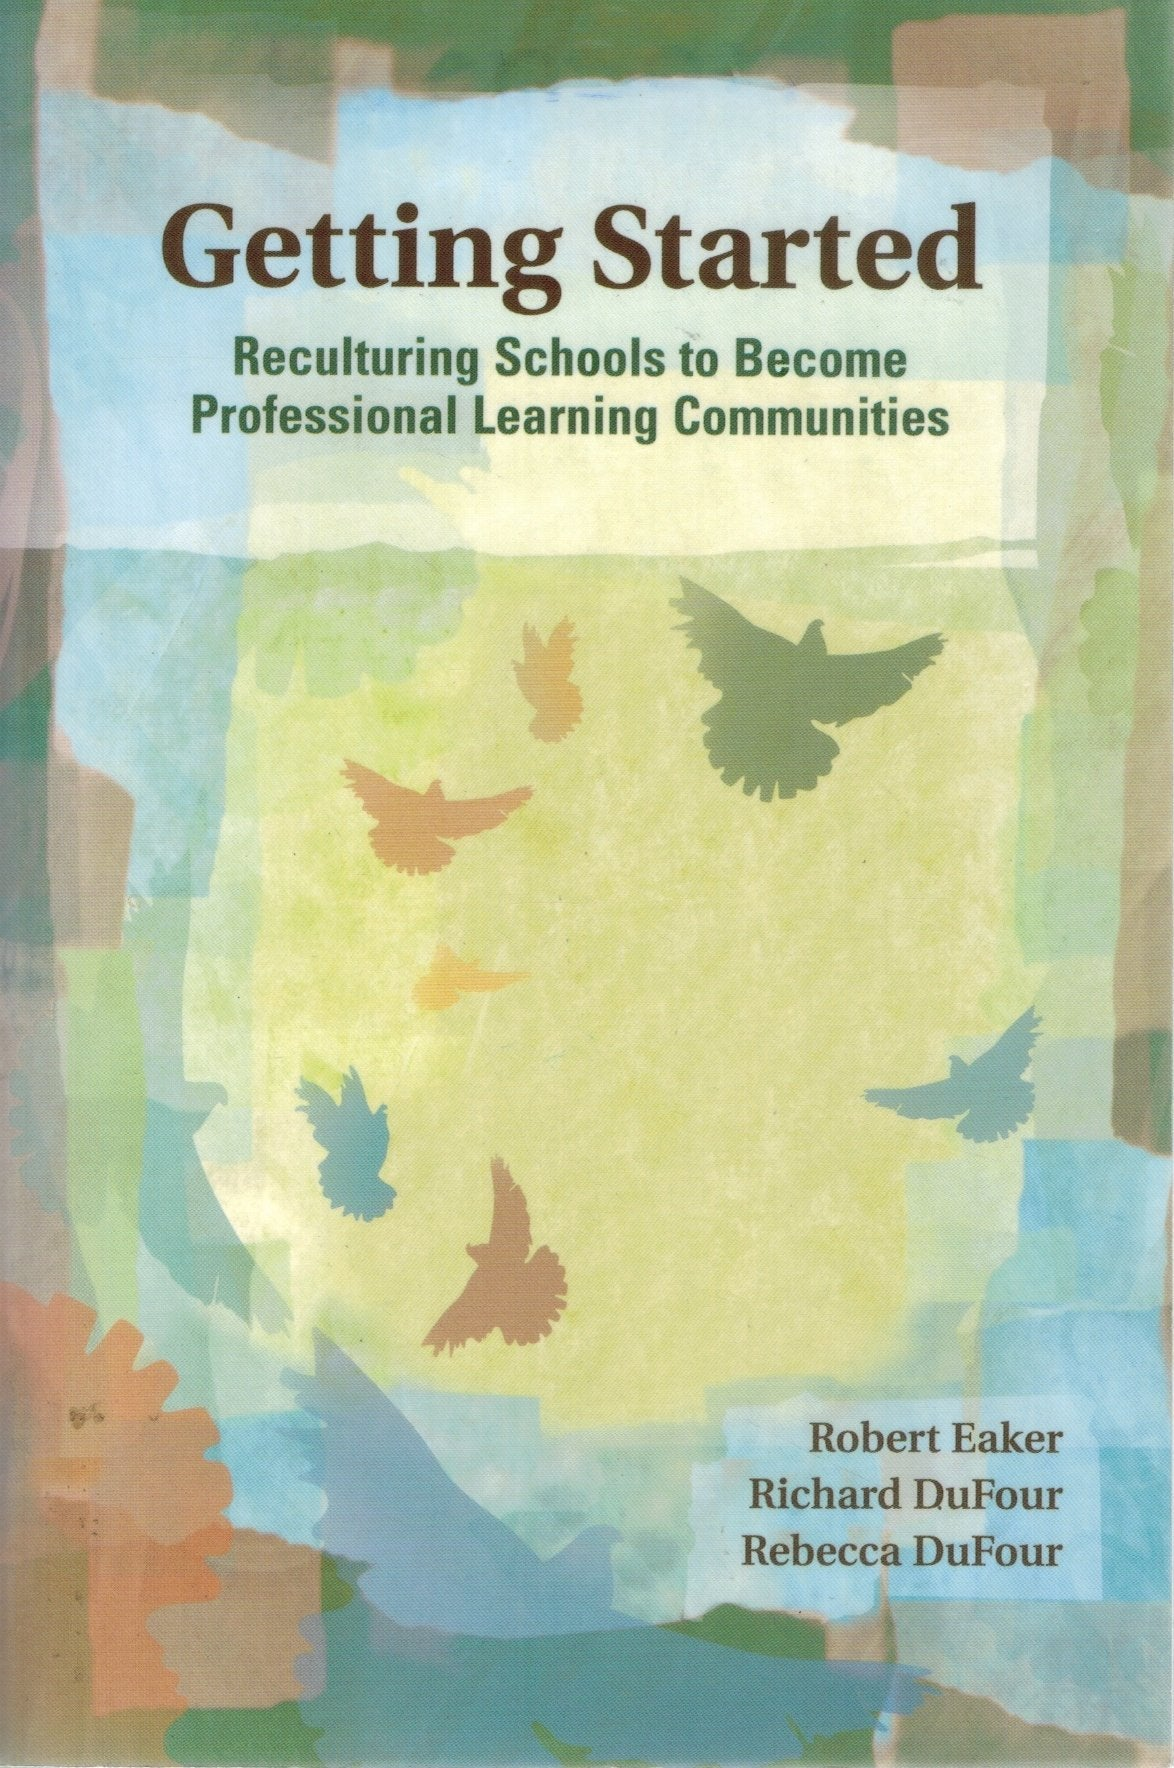 GETTING STARTED Reculturing Schools to Become Professional Learning  Communities  by Eaker, Robert & Richard Dufour & Rebecca Dufour